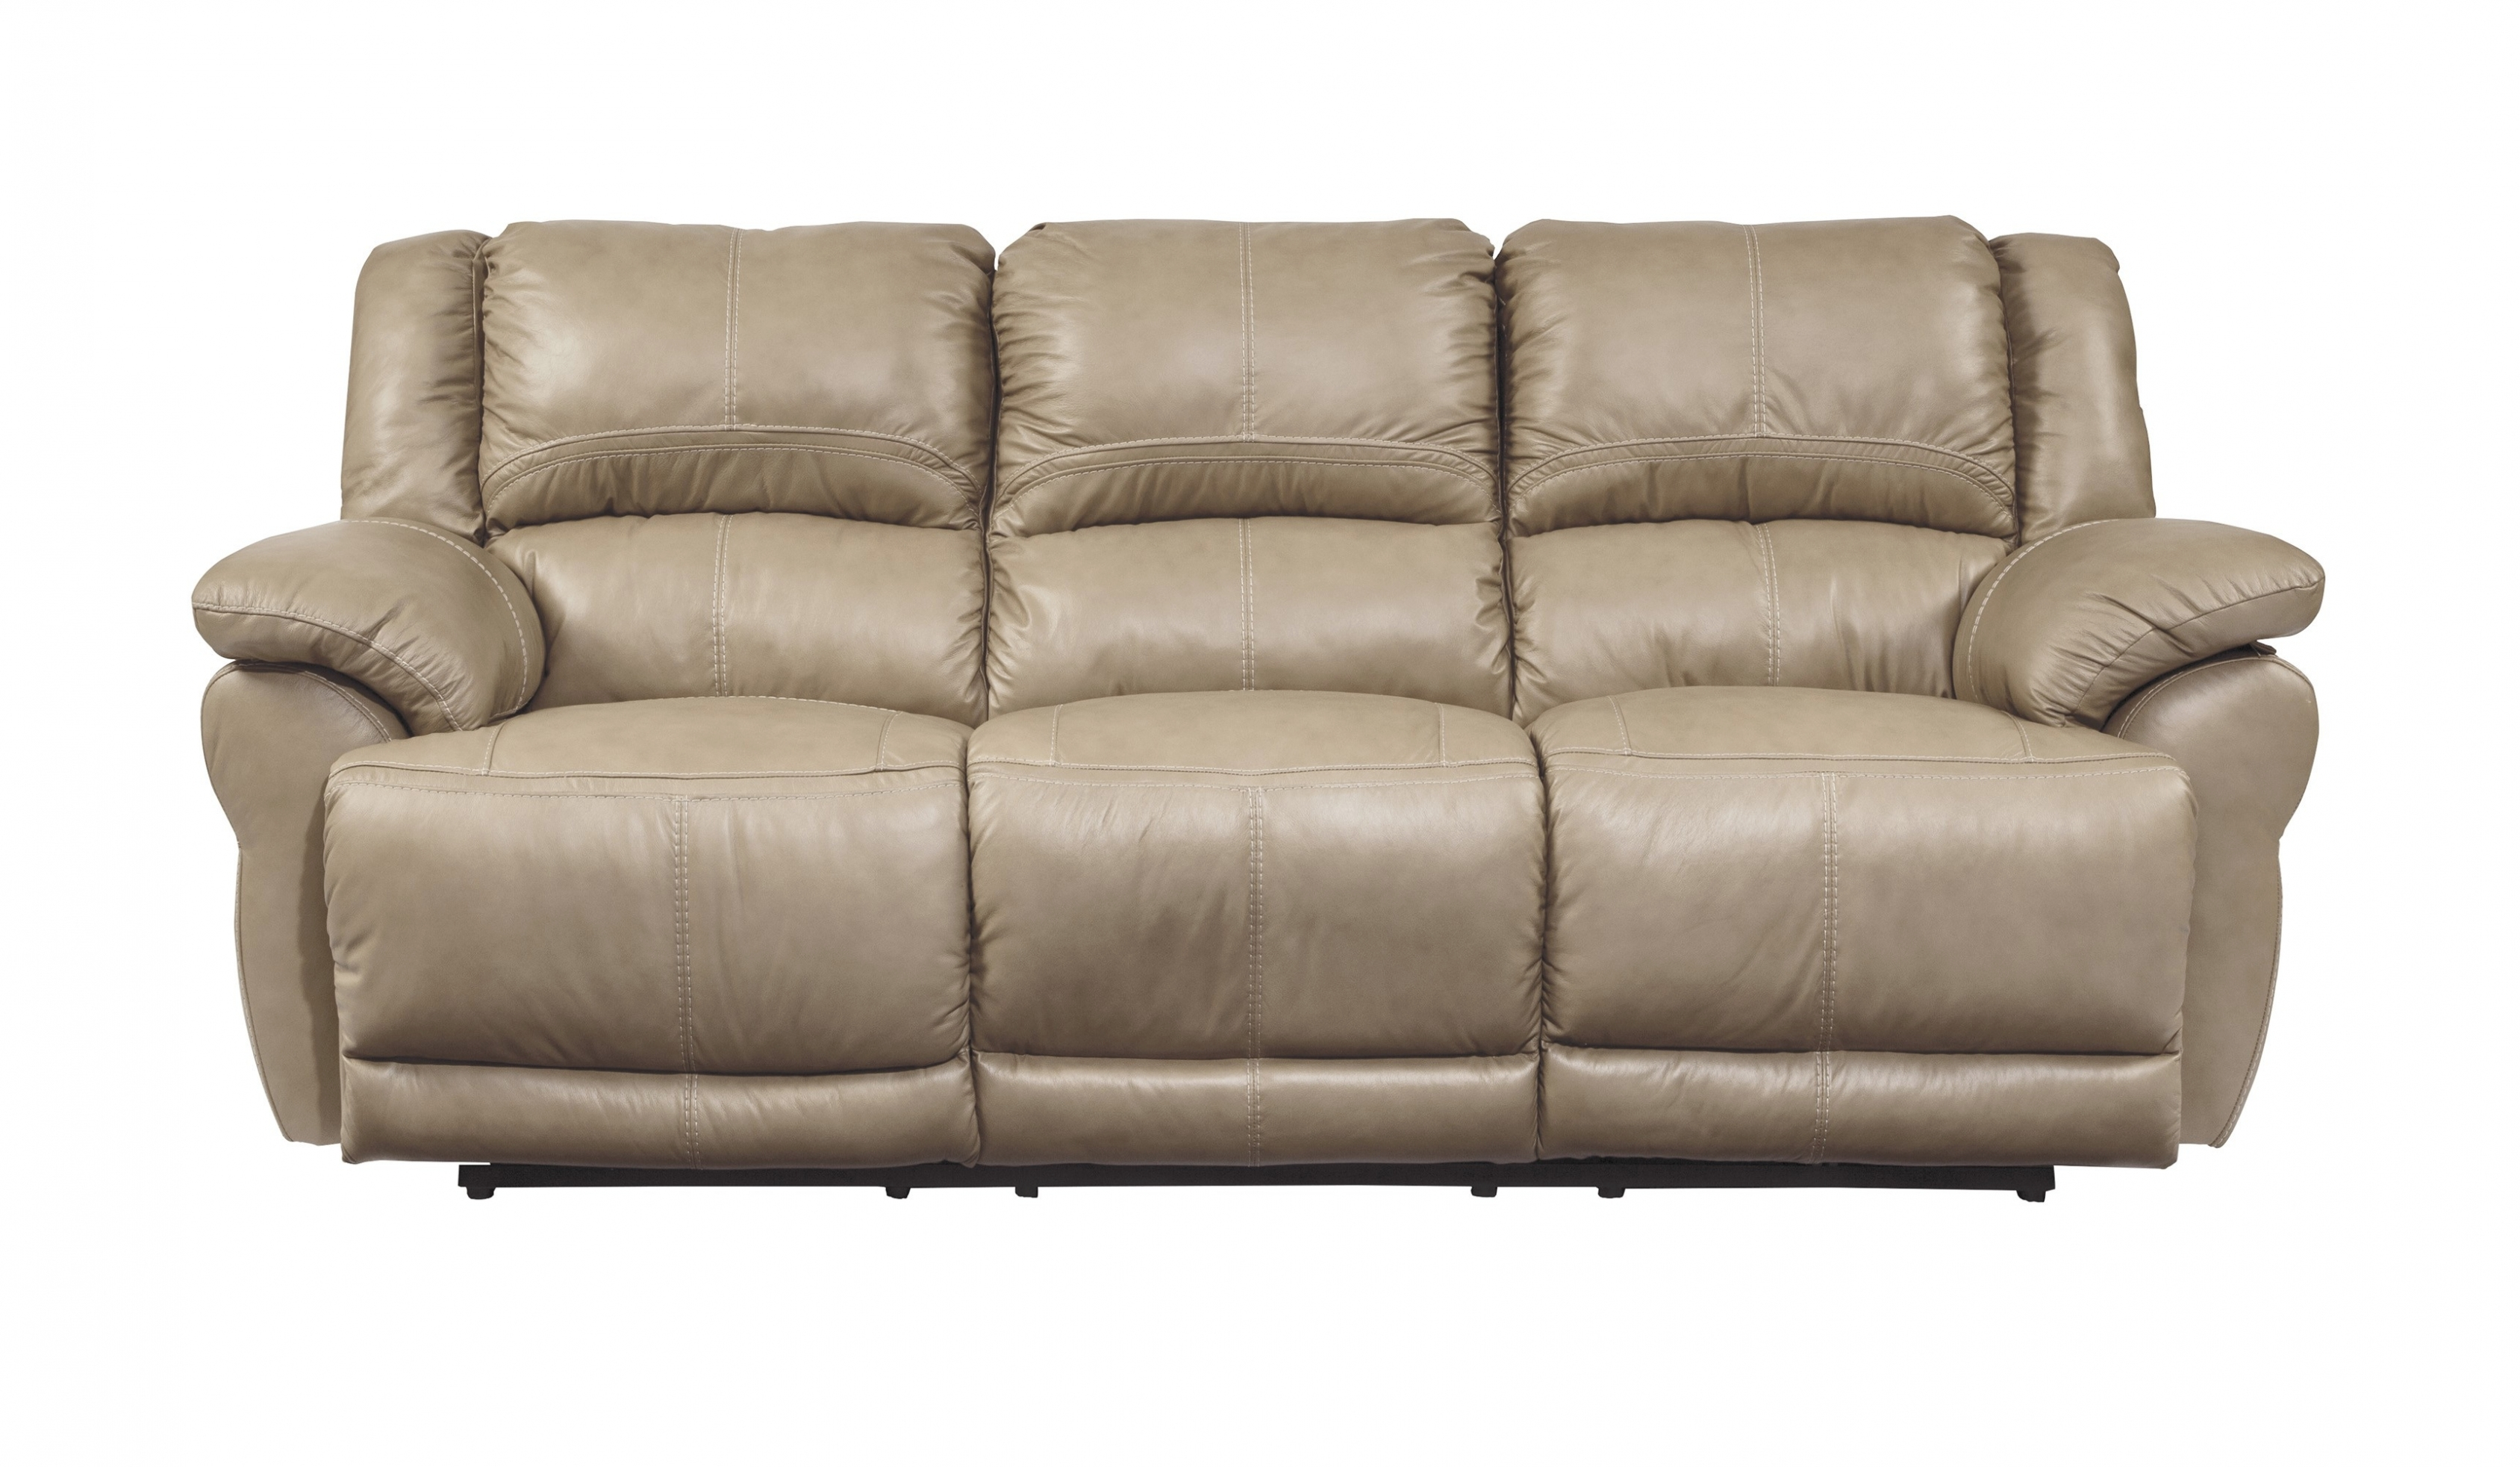 Motorized Sectional Sofa | Home And Textiles Intended For Denali Light Grey 6 Piece Reclining Sectionals With 2 Power Headrests (Image 17 of 25)